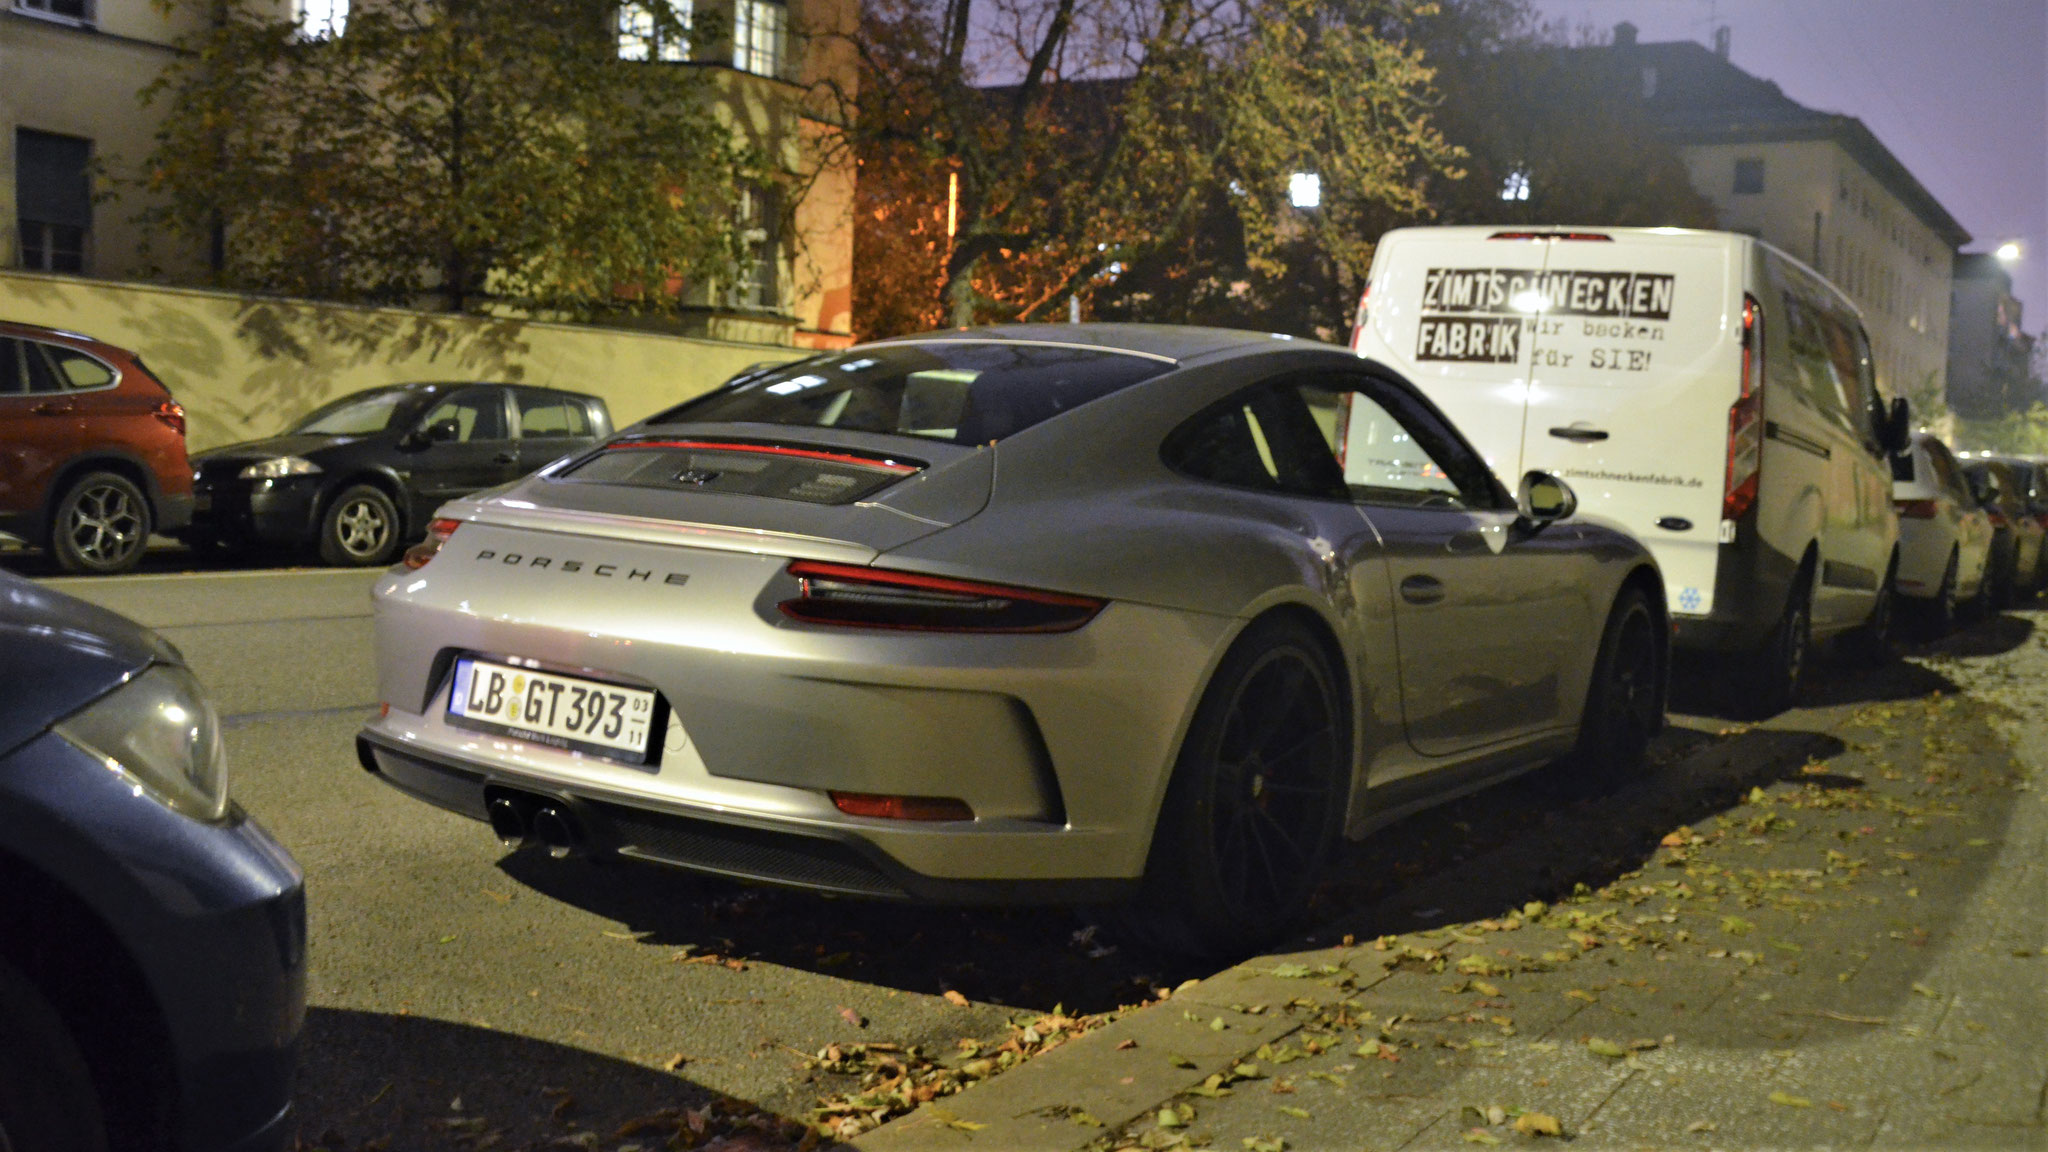 Porsche 991 GT3 Touring Package - LB-GT-393